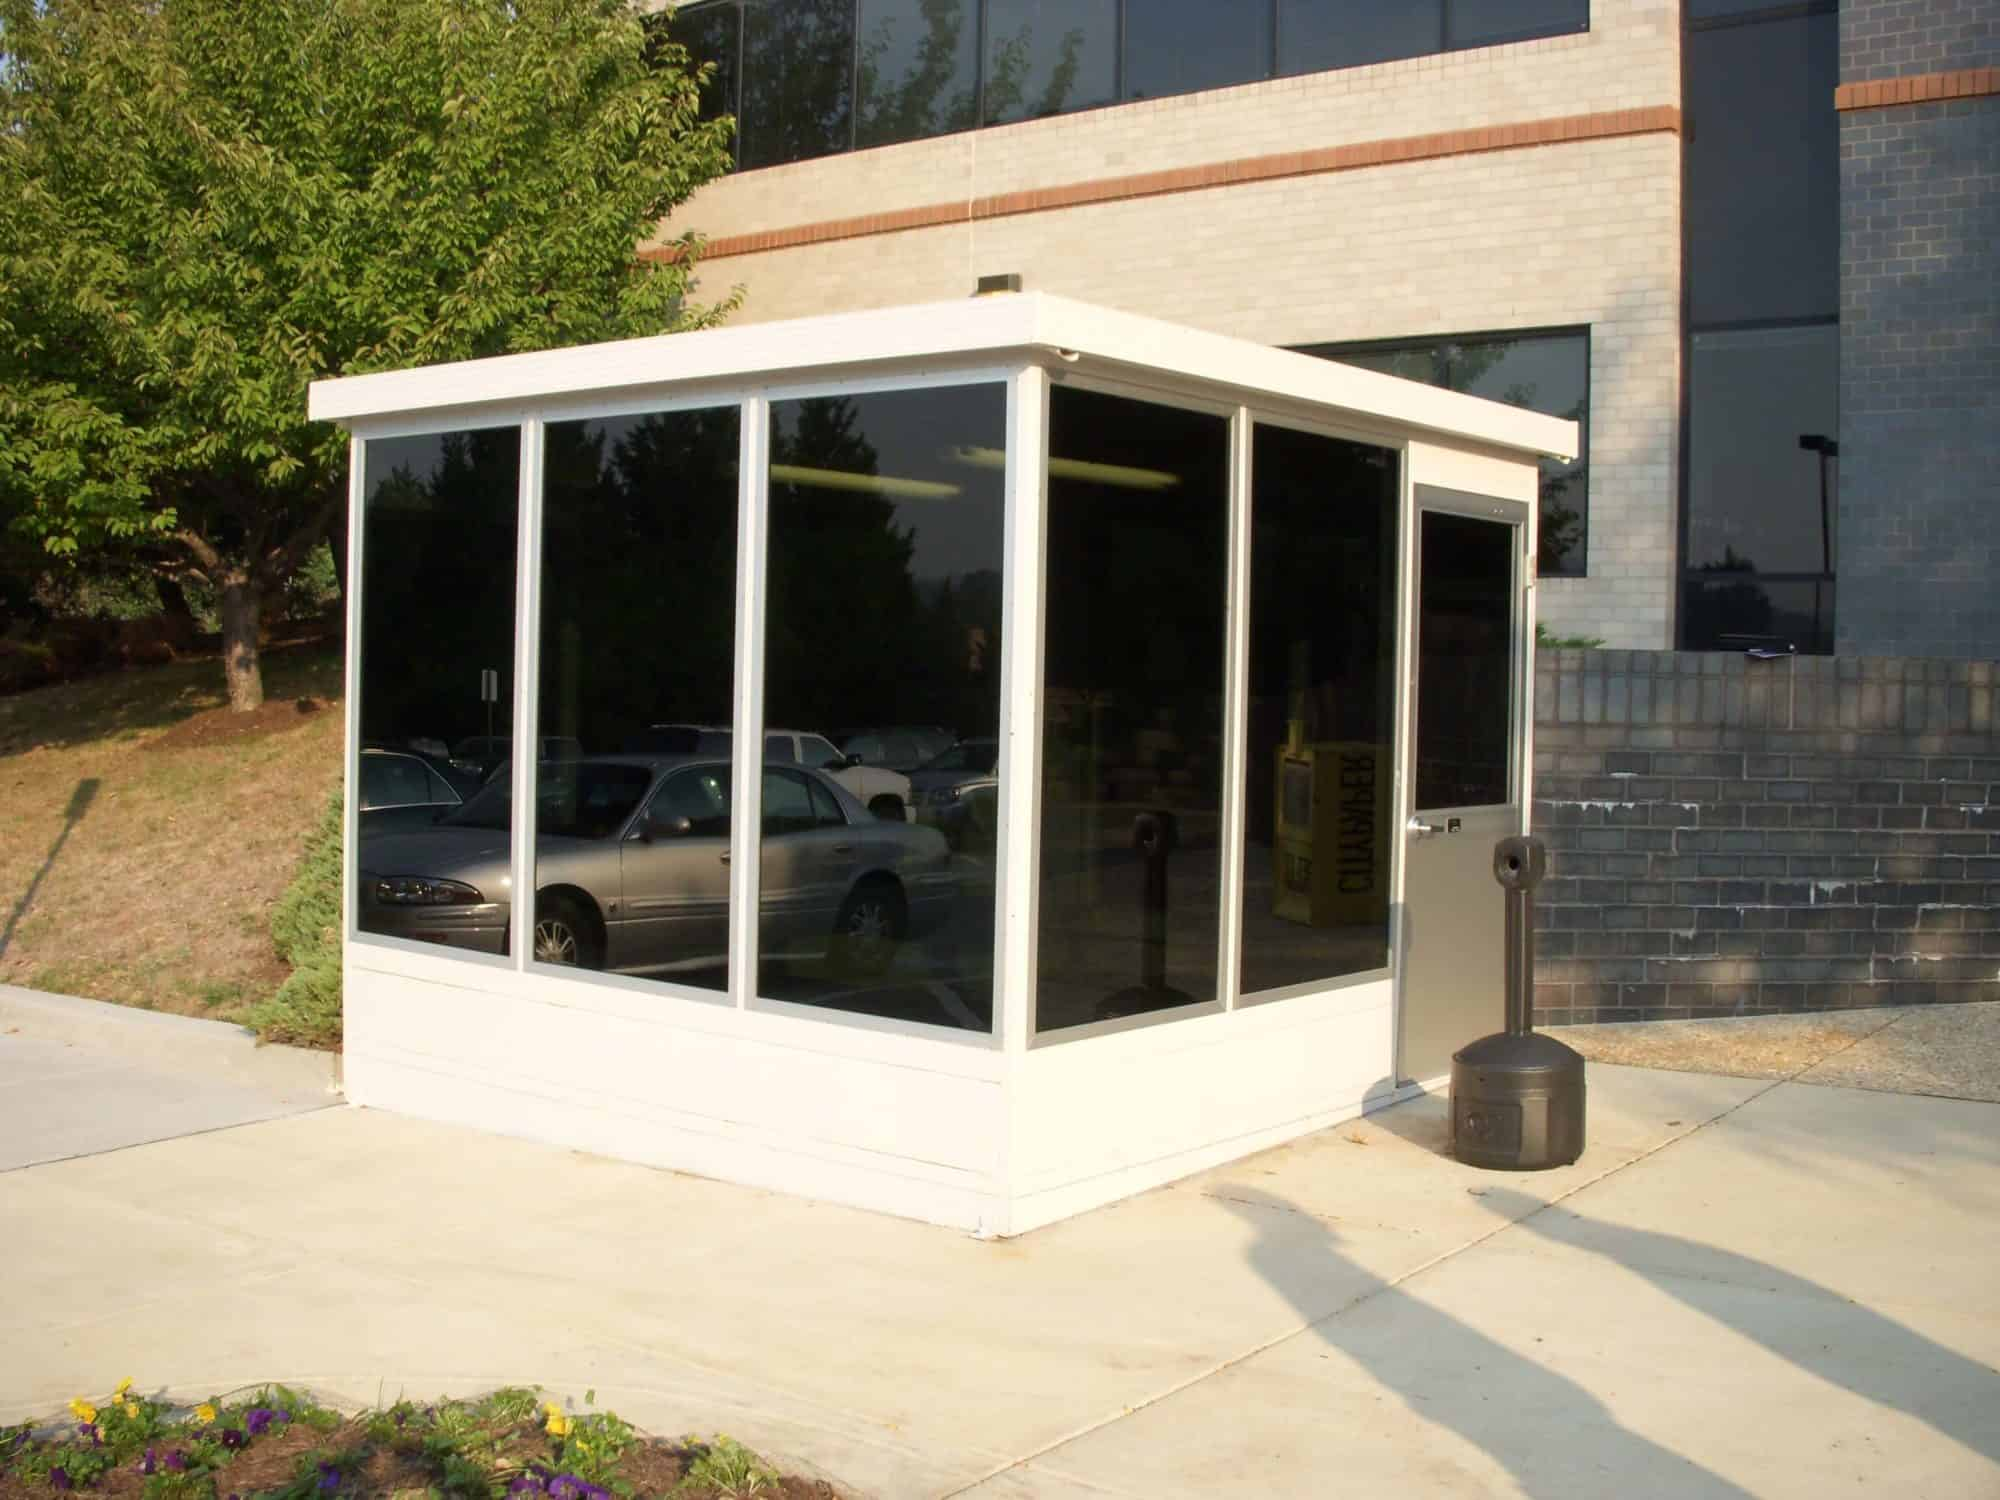 Manufacturing Supplier Development Smoking Shelters Image Gallery Porta King